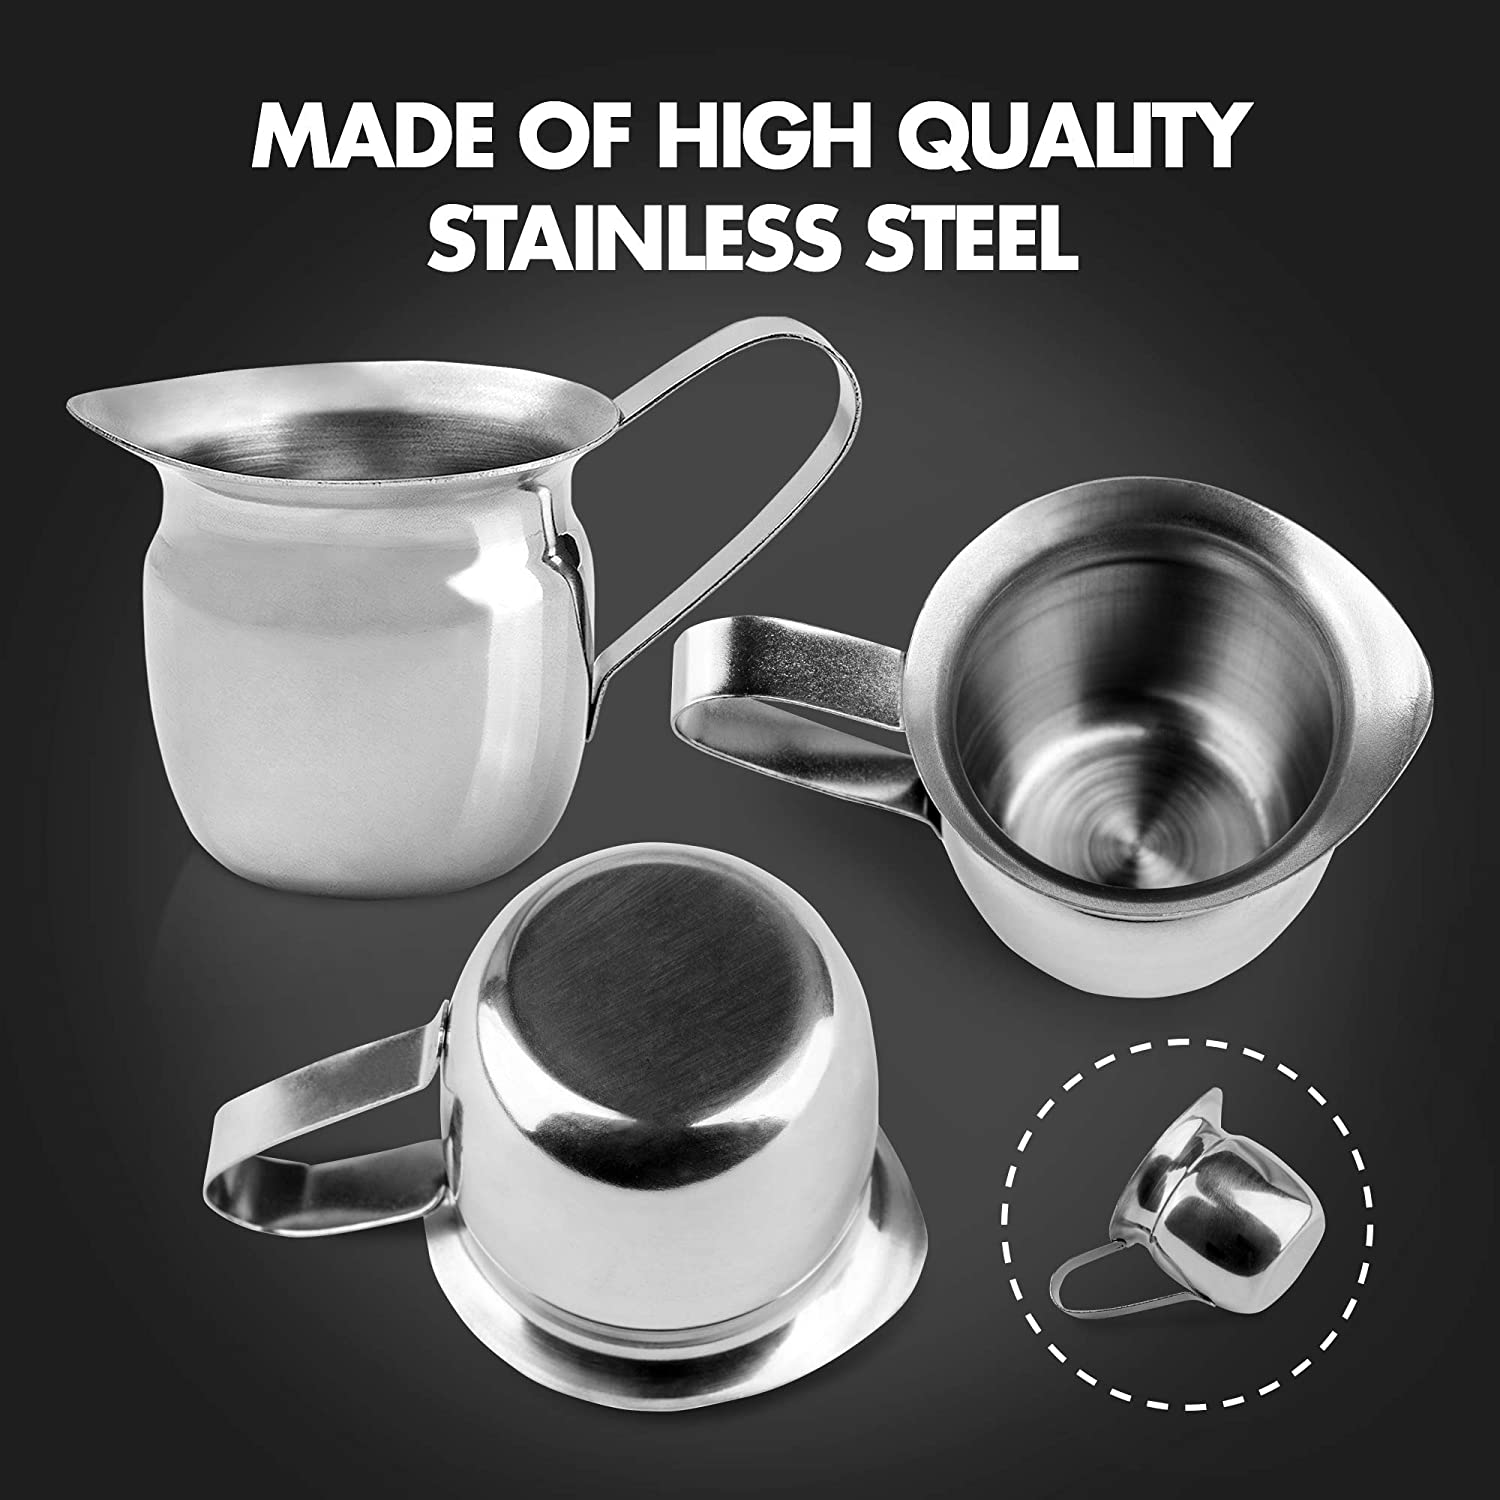 Salad Dressing Coffee Cream Cafes 3 oz Creamer Pitcher Sugar Stainless Steel Bell Creamers Maple Syrup Mini Cup Container for Serving Milk Espresso Machine for Restaurant 12 Pack Home Used